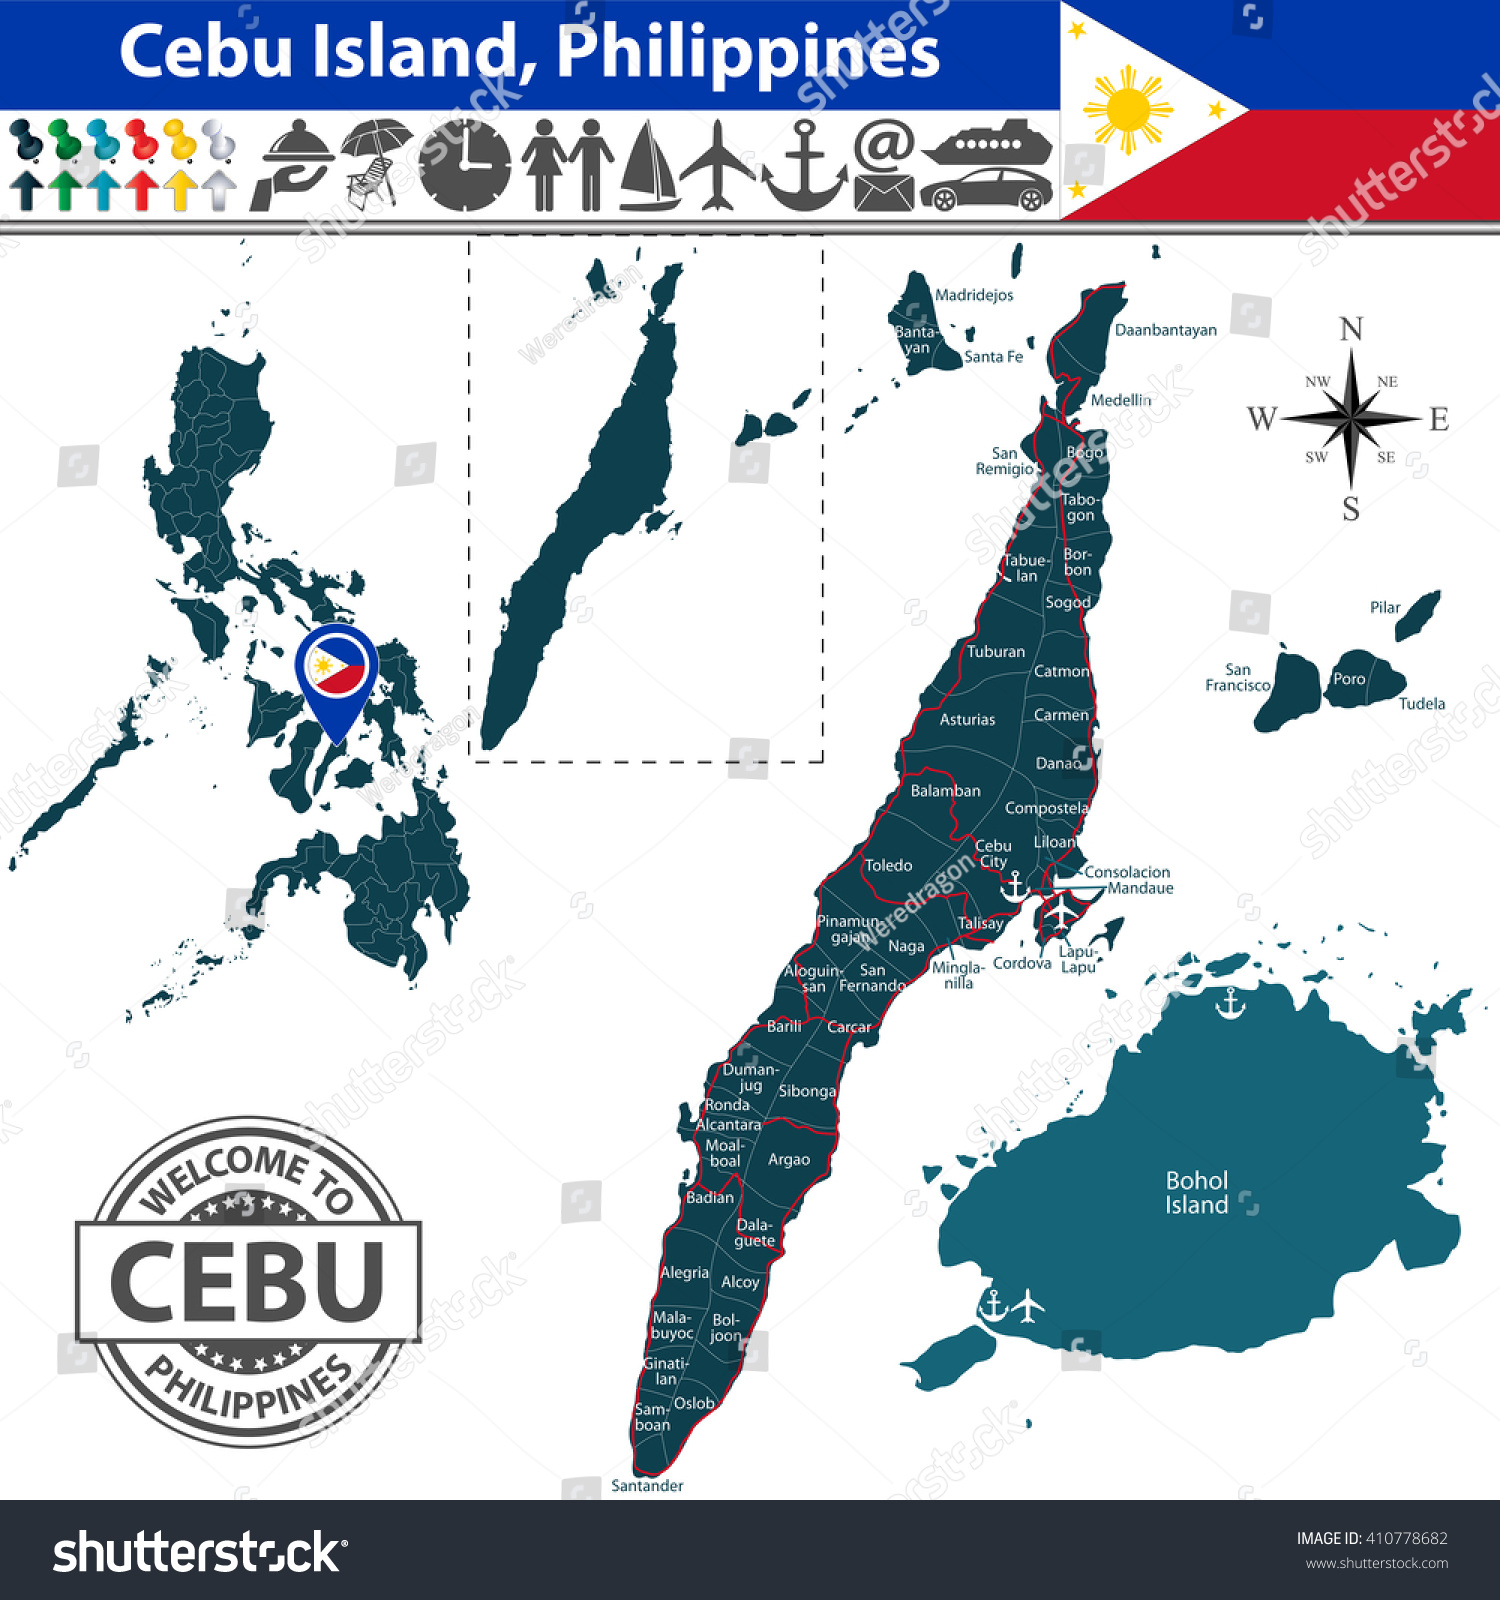 Vector cebu island philippines map contains vector de stock410778682 vector of cebu island philippines map contains bohol island roads and travel icons gumiabroncs Images